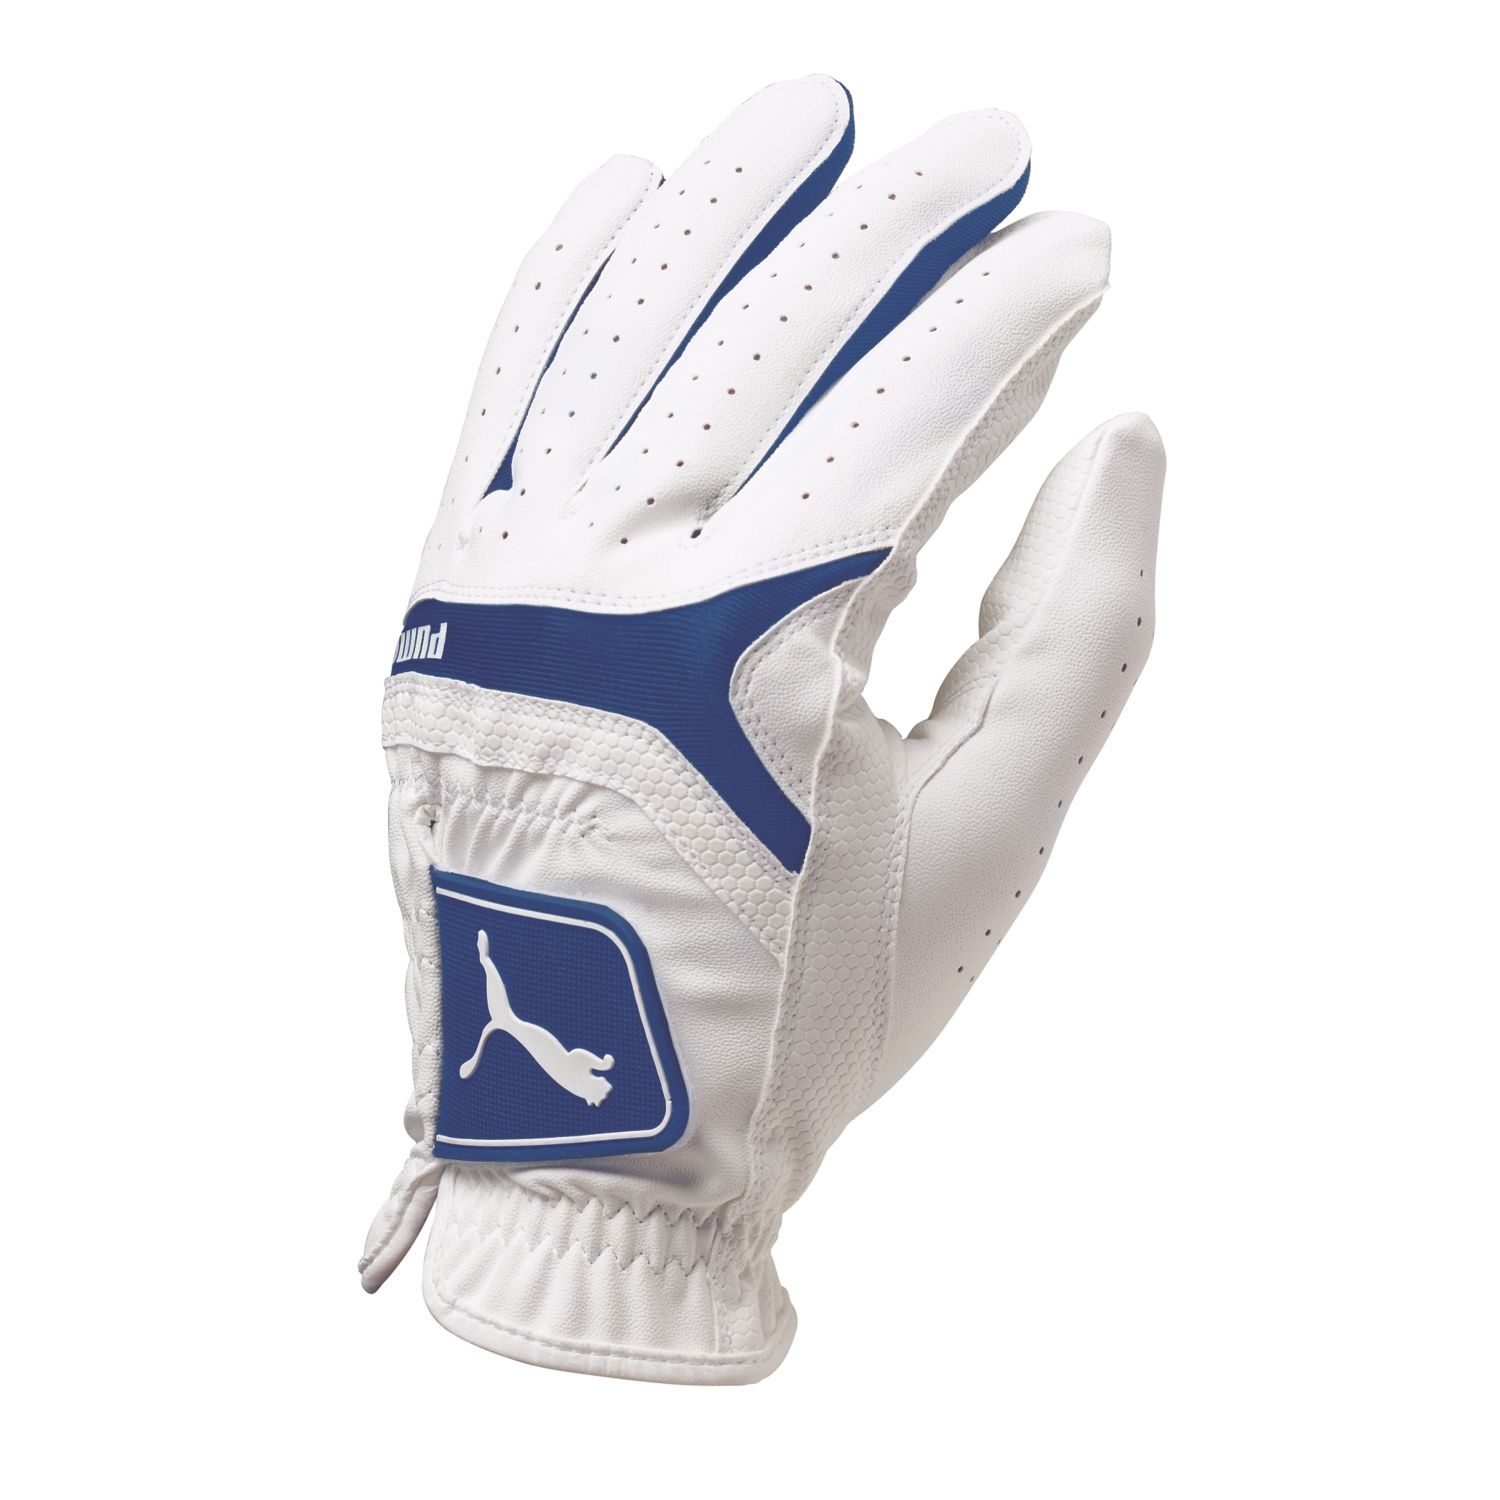 PUMA SPORT PERFORMANCE GOLF GLOVE MENS CADET LEFT HANDED New 2017 by Puma